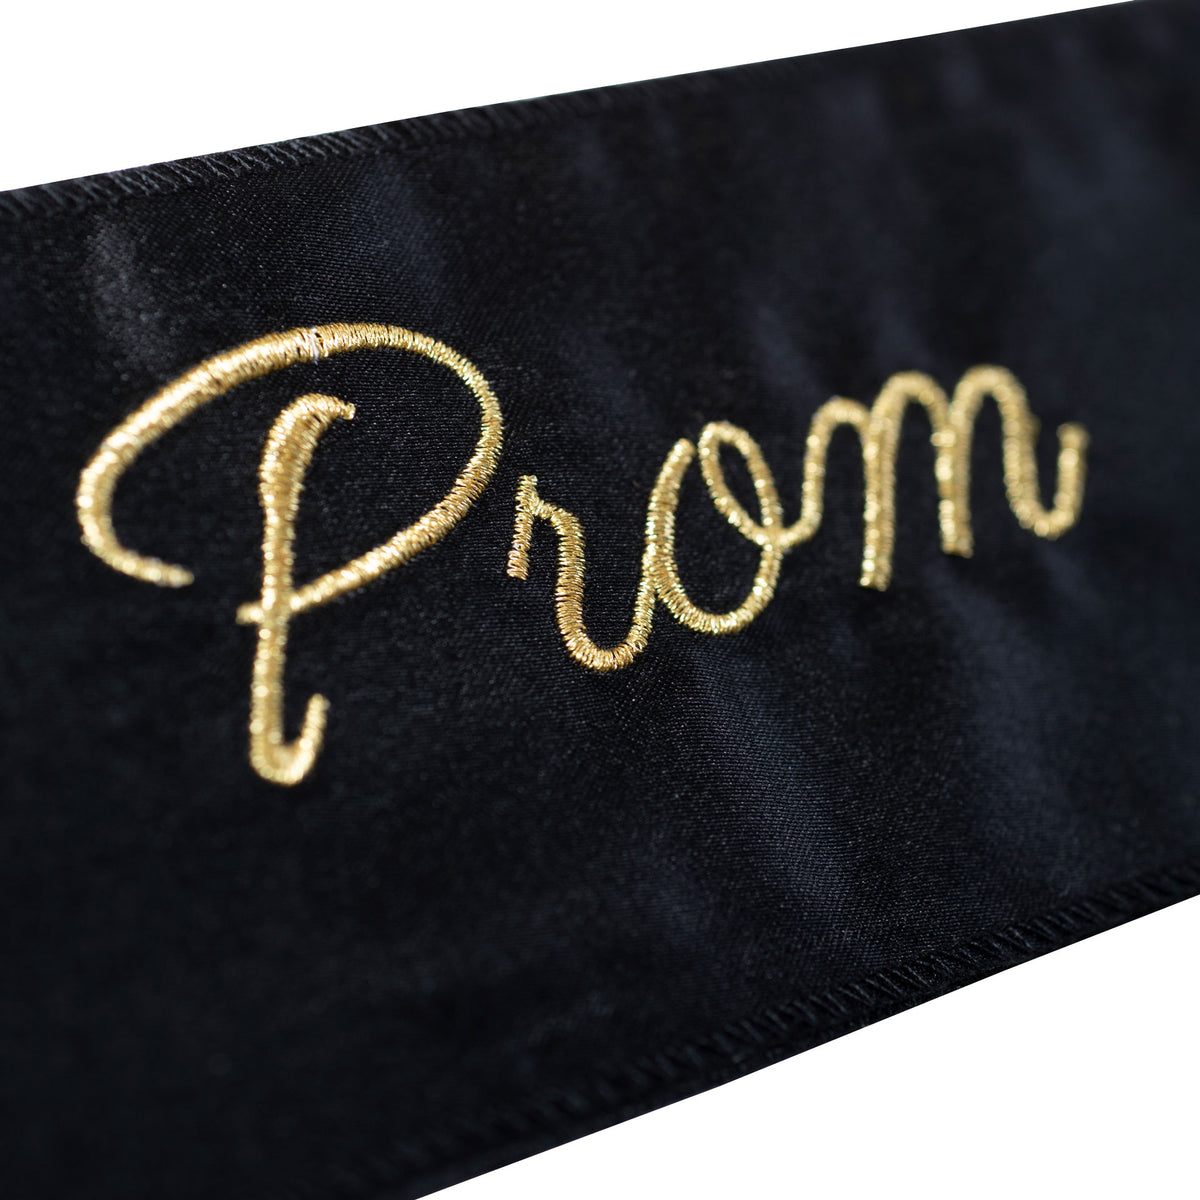 Black & Gold Embroidered Prom Court Sash